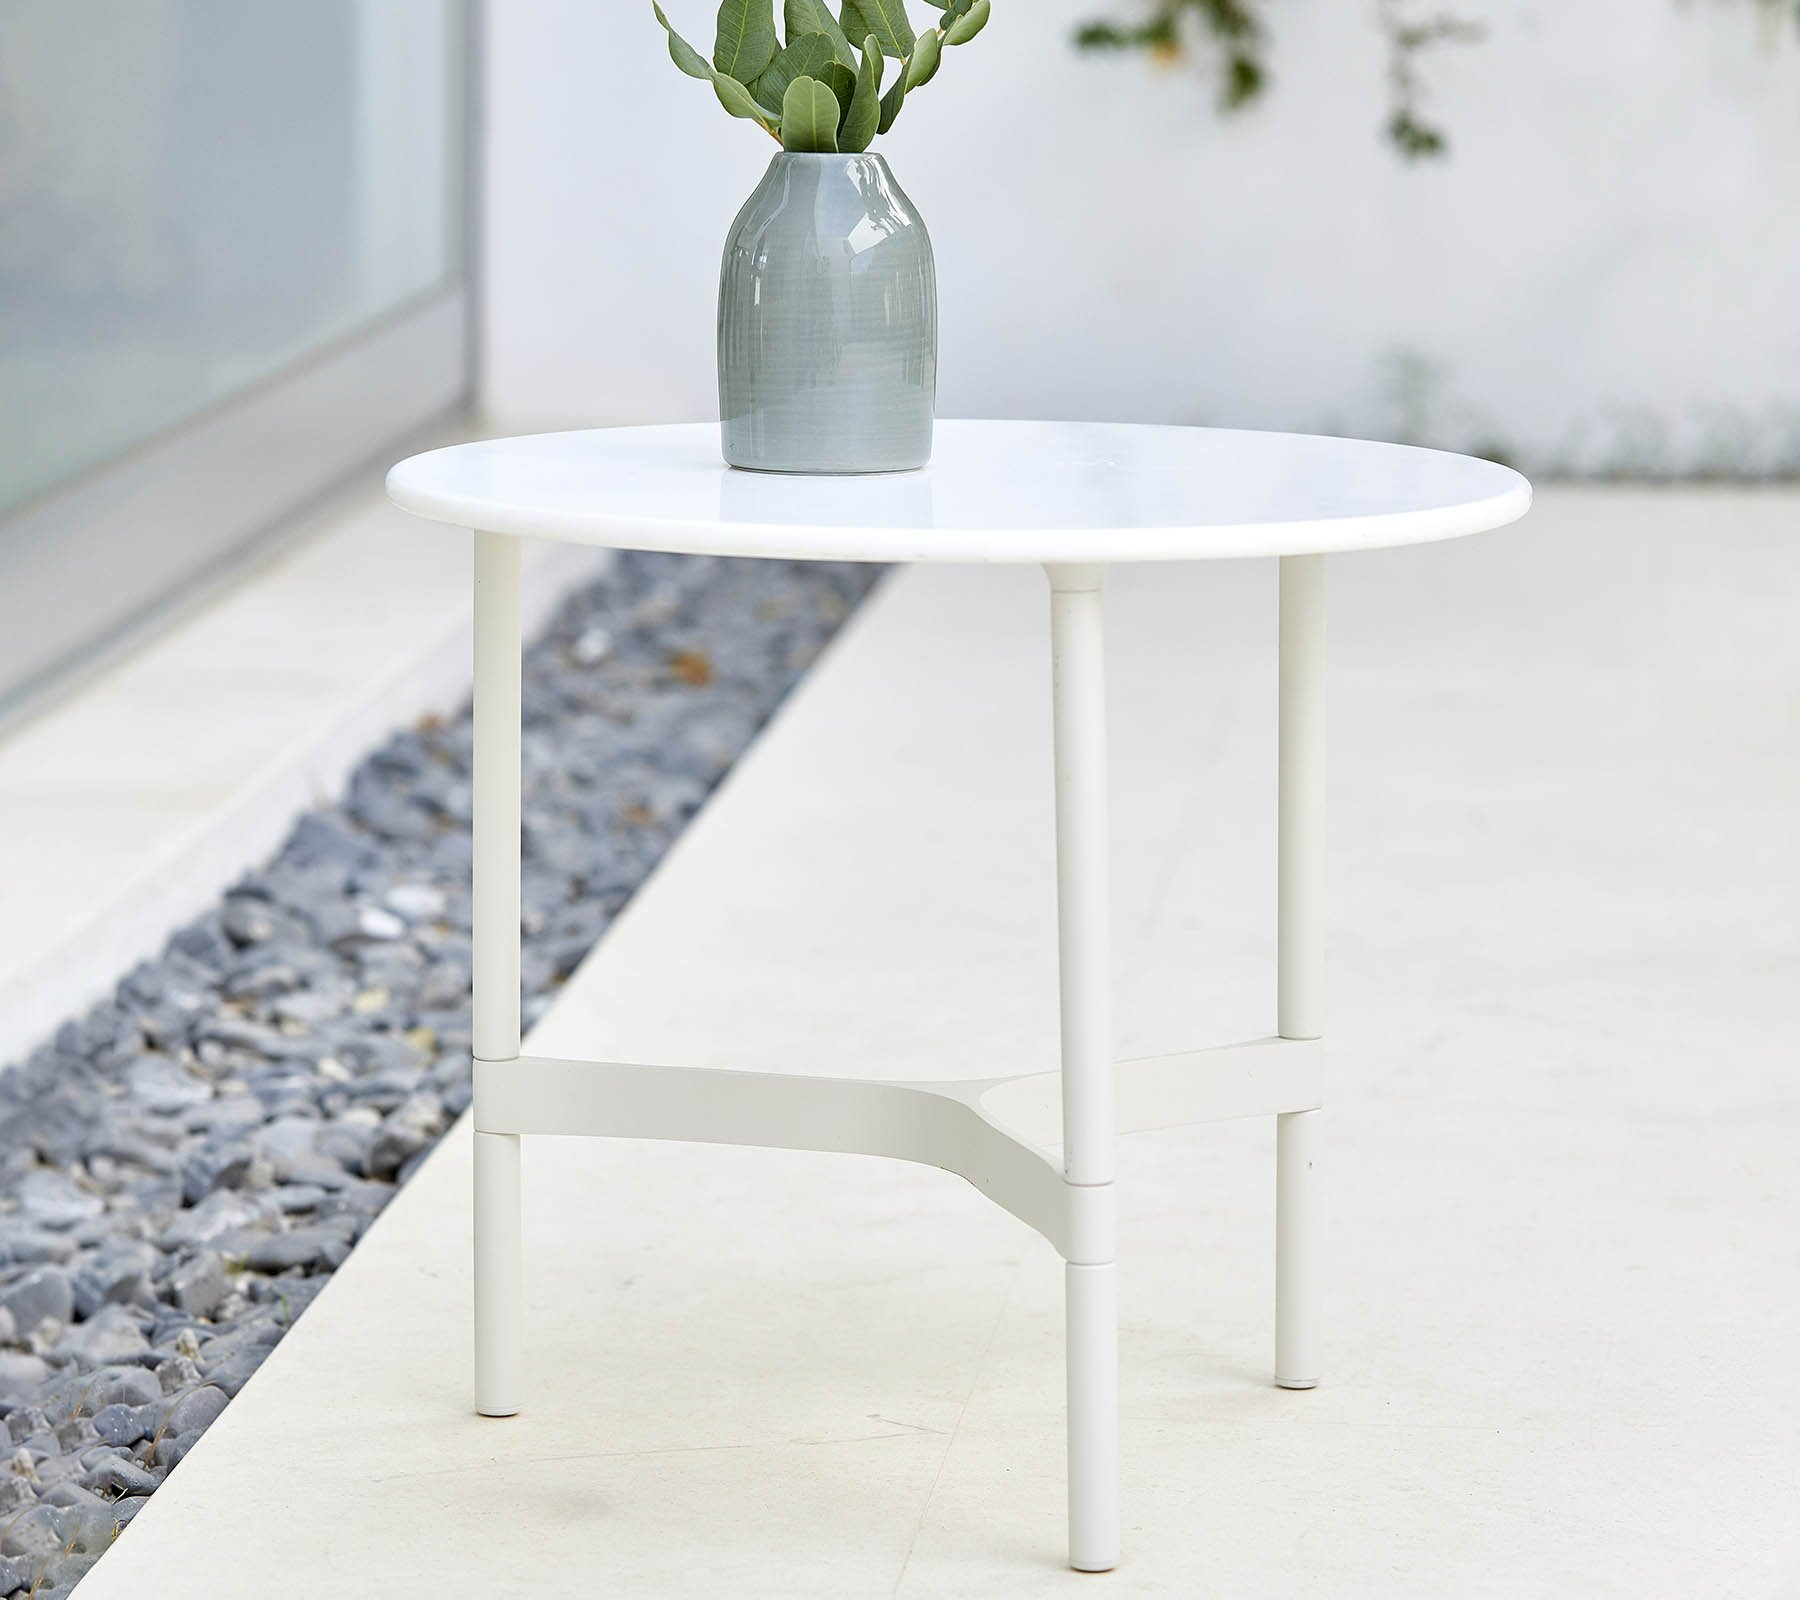 Twist Coffee Table from Cane-line, designed by byKATO